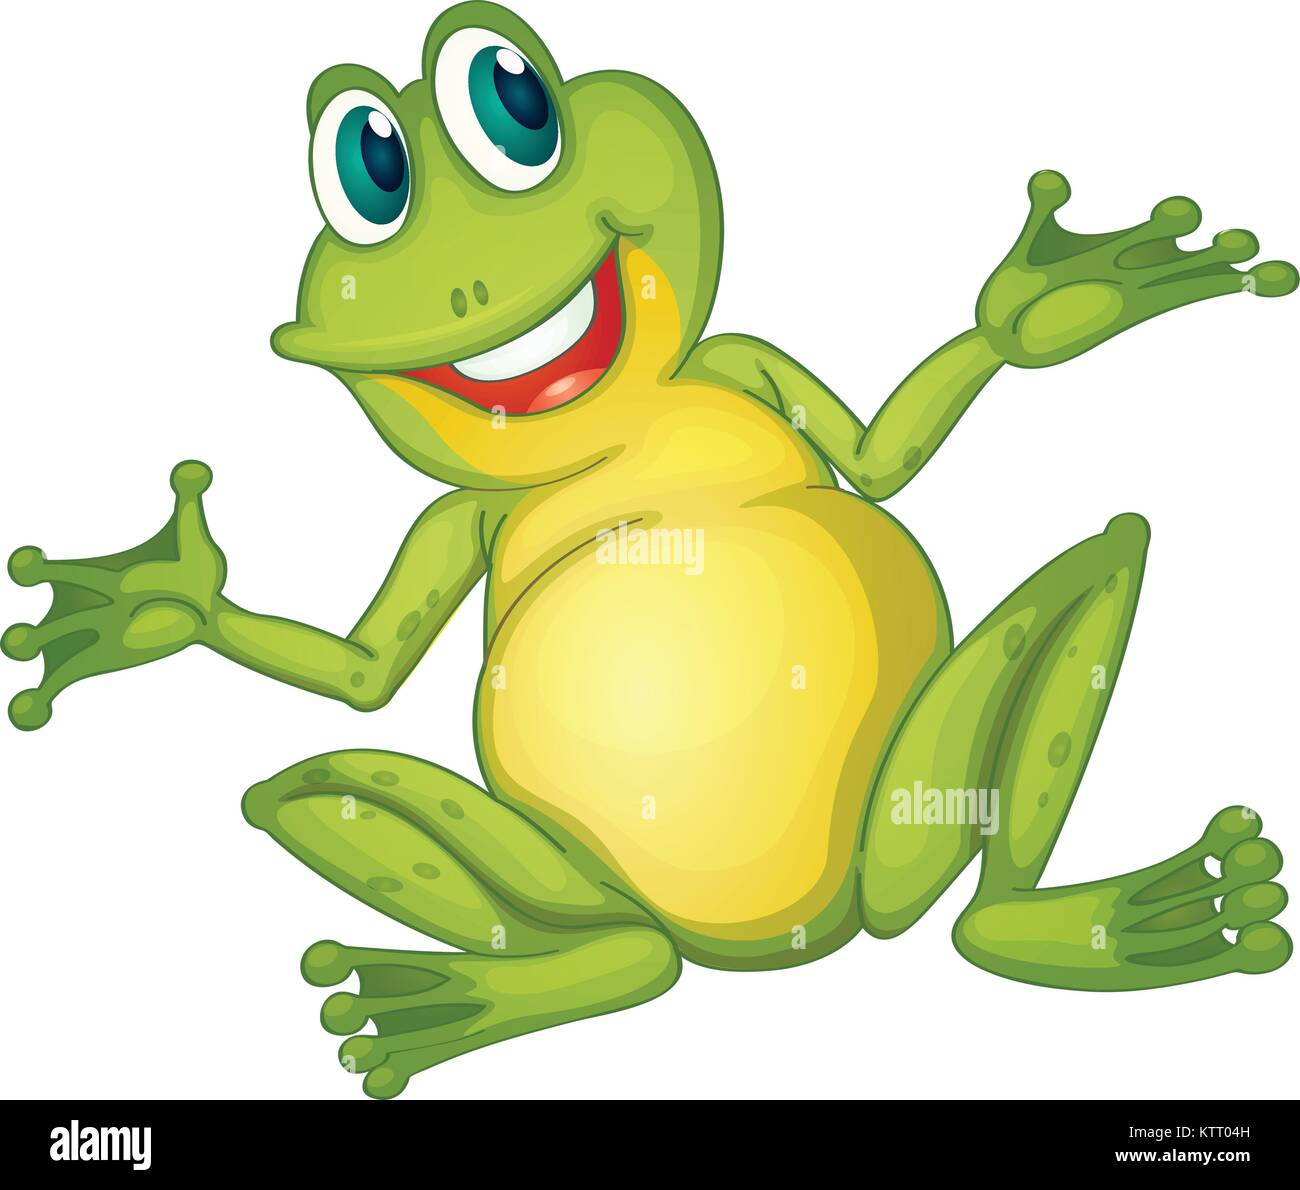 Illustration of a frog cartoon character Stock Vector